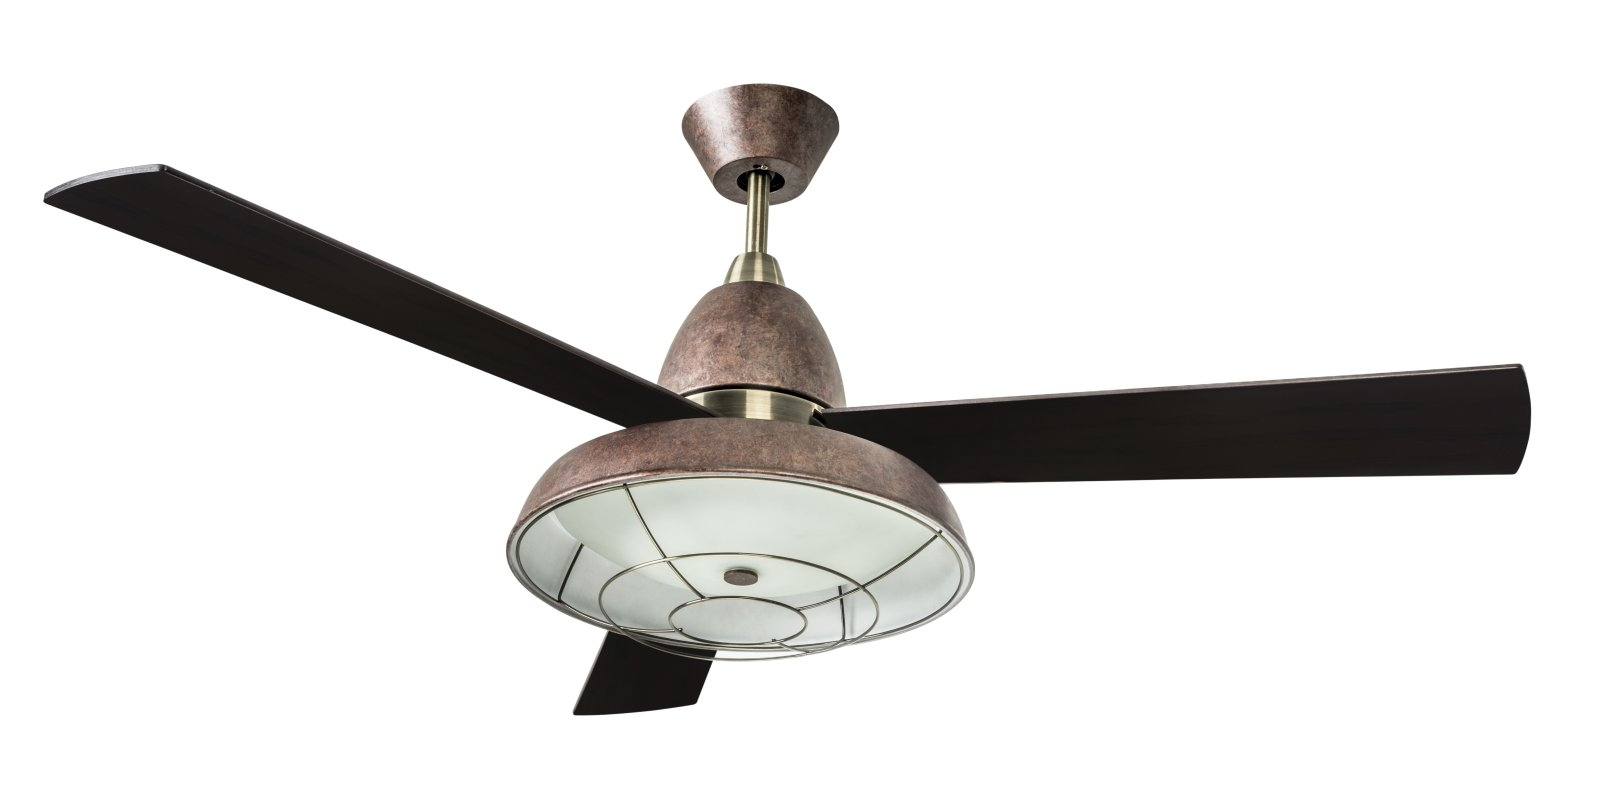 retro ceiling fan with caged light. Black Bedroom Furniture Sets. Home Design Ideas